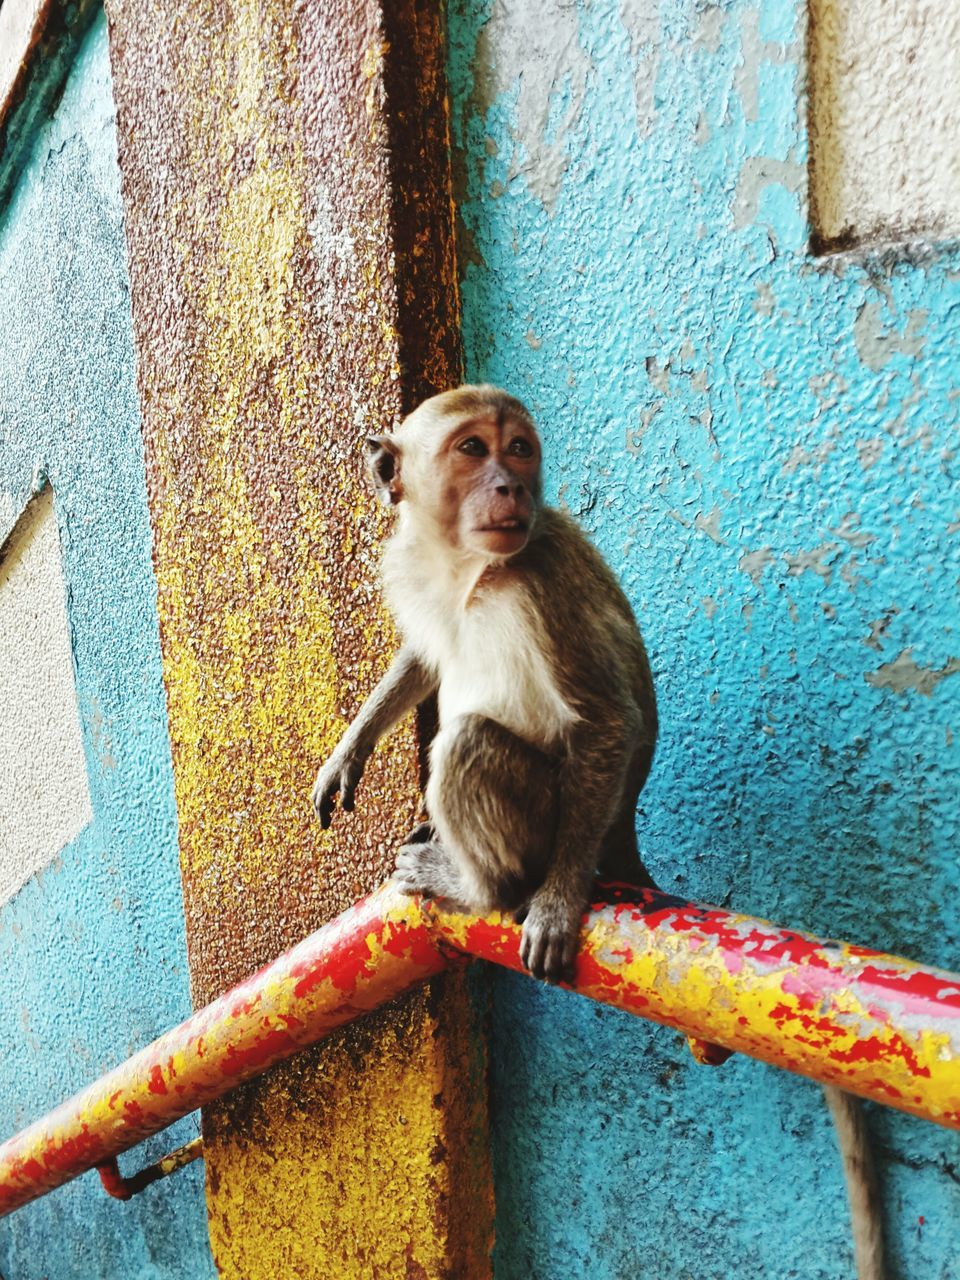 monkey, outdoors, animal themes, mammal, one animal, day, no people, animals in the wild, animal wildlife, architecture, sitting, close-up